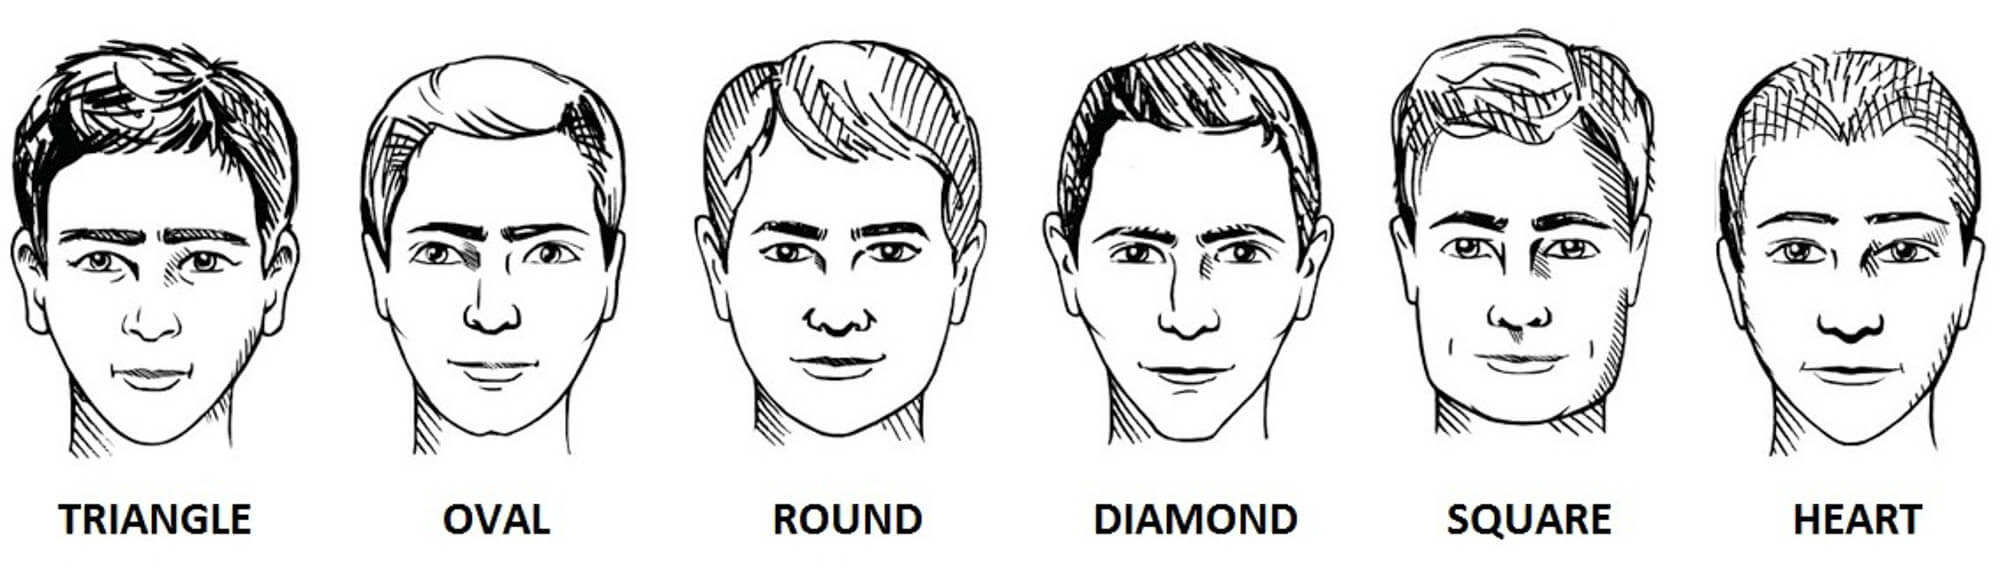 Haircuts-for-various-face-shapes.jpg